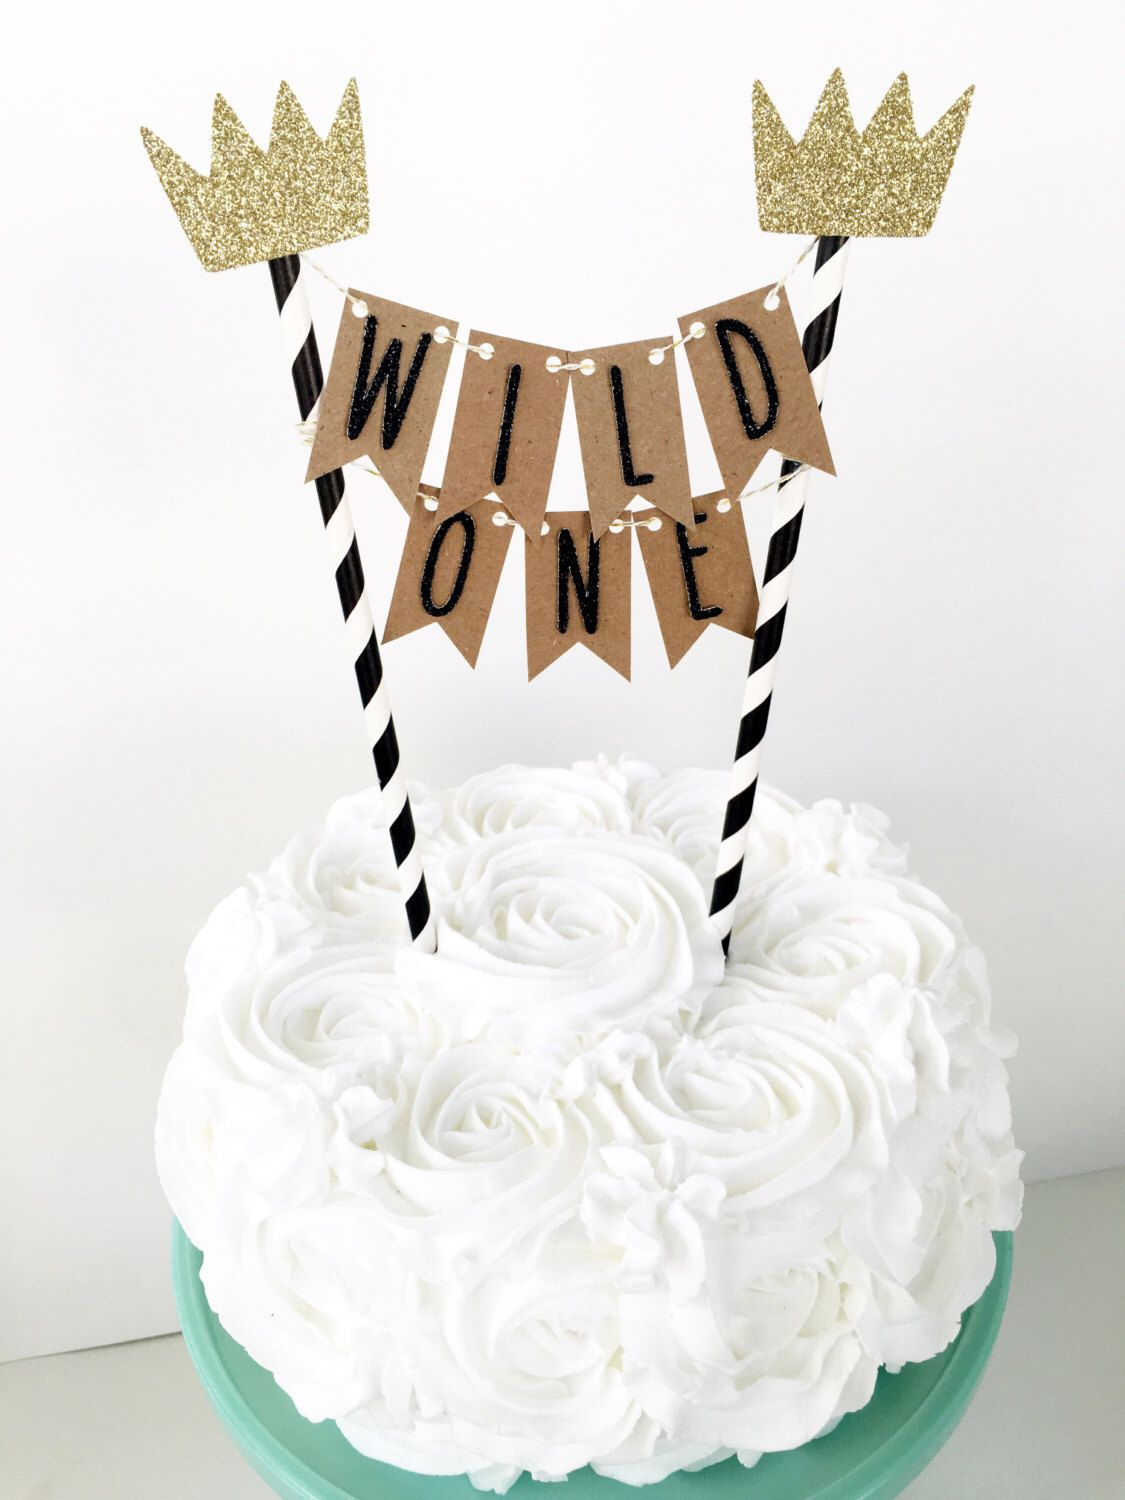 Where The Wild Things Are Cake Topper / Wild One Cake